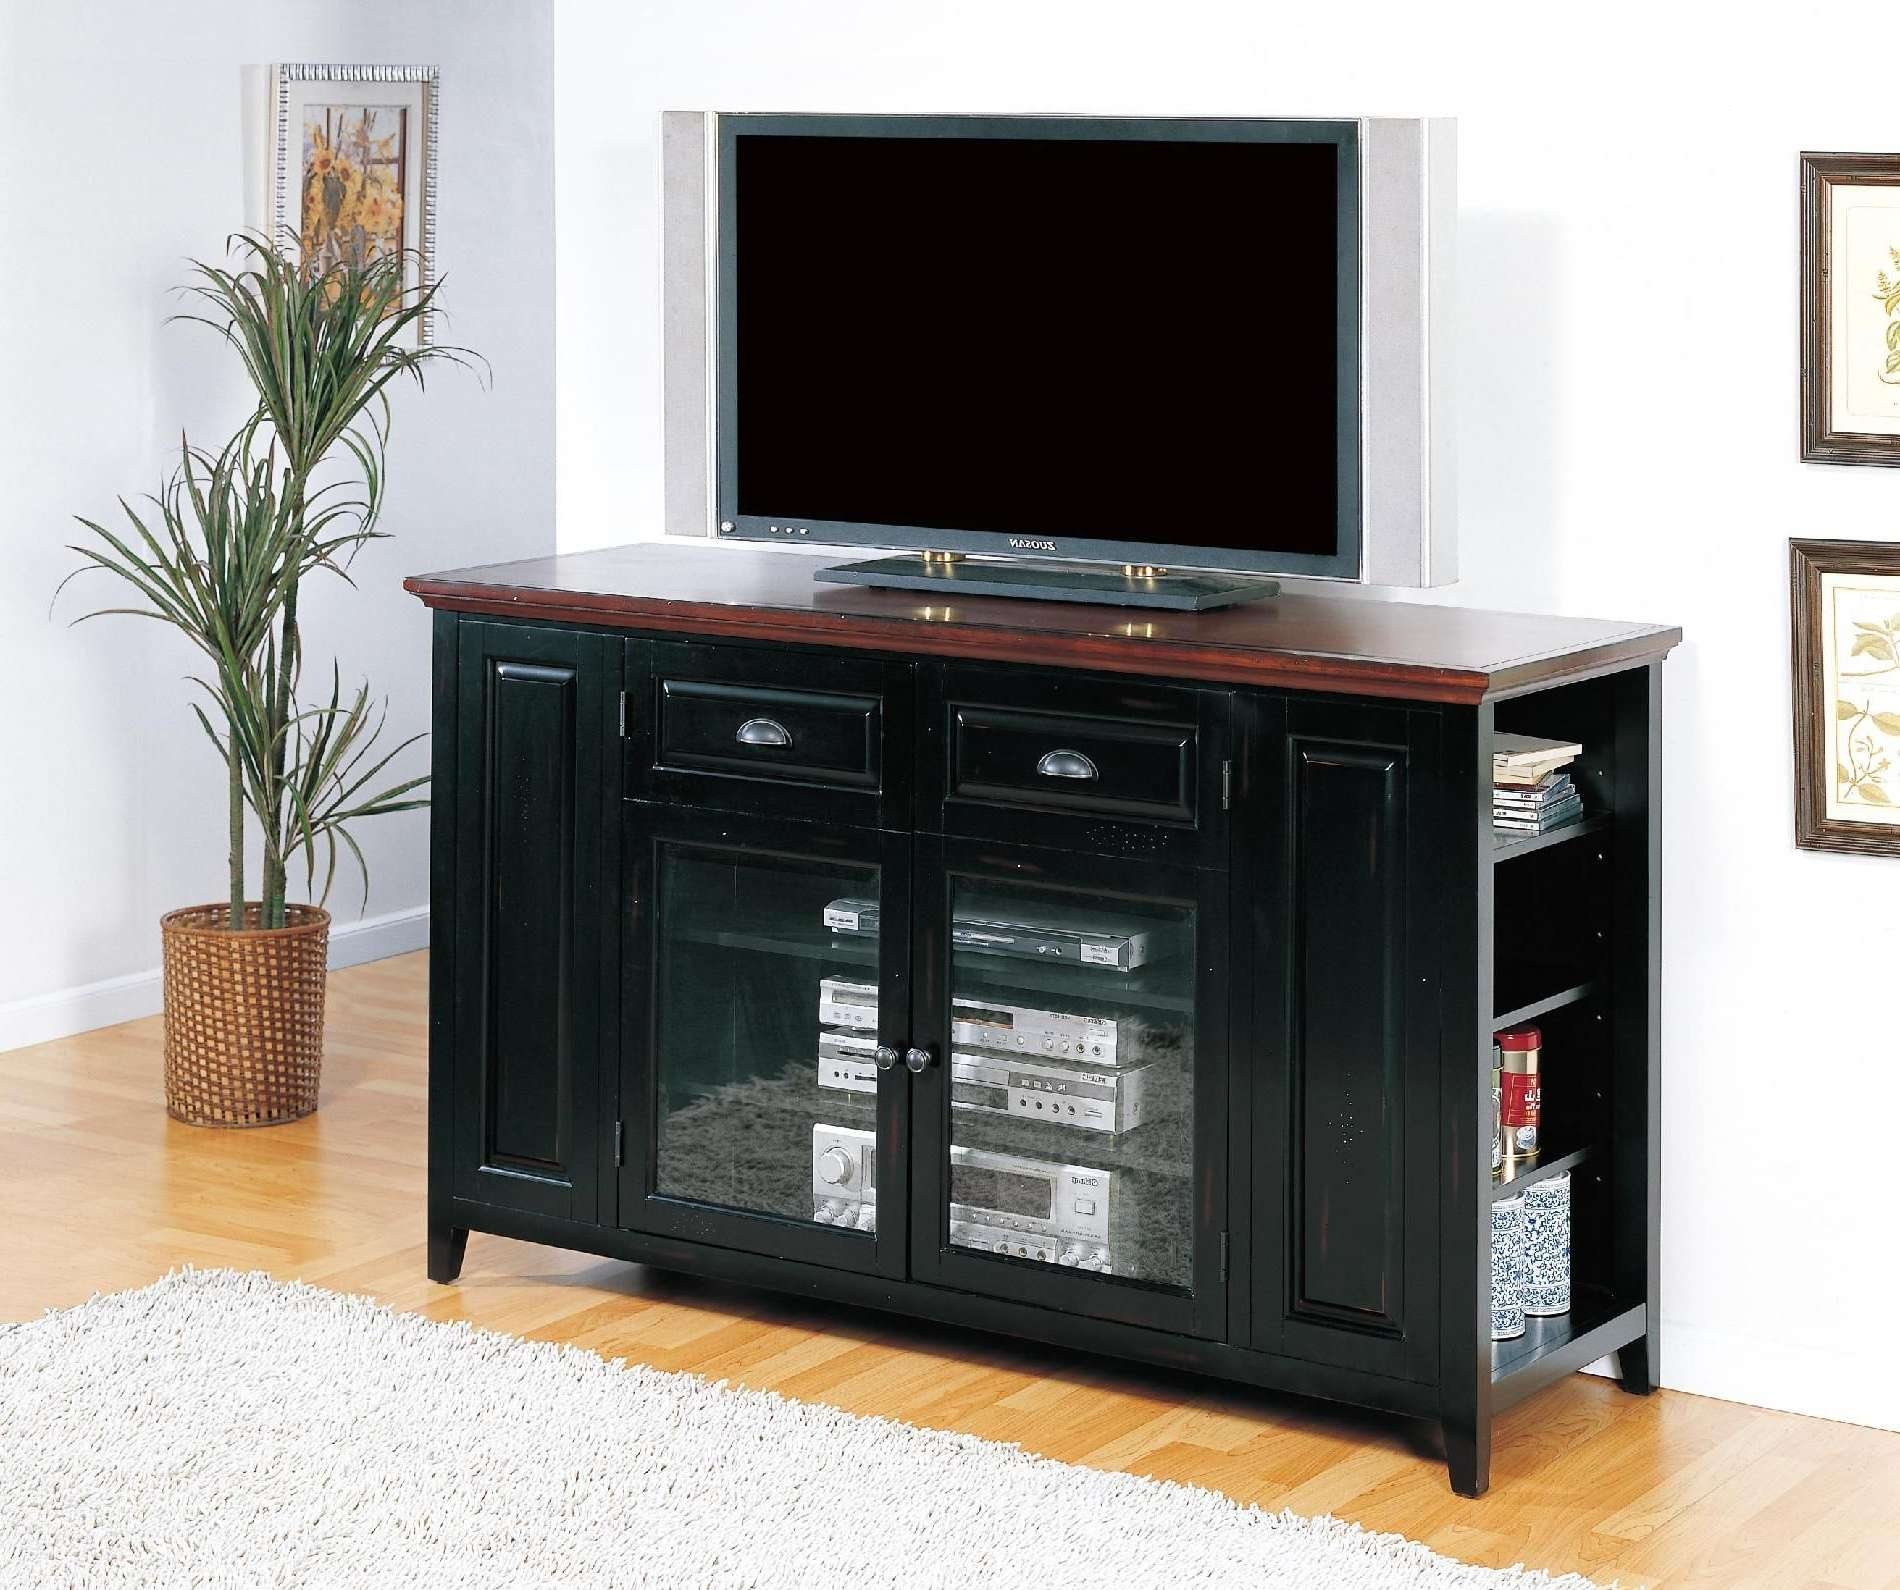 Retro Black Oak Wood Tv Stand With Glass Doors Of Tall Tv Stands Regarding Wood Tv Stands With Glass (View 12 of 15)